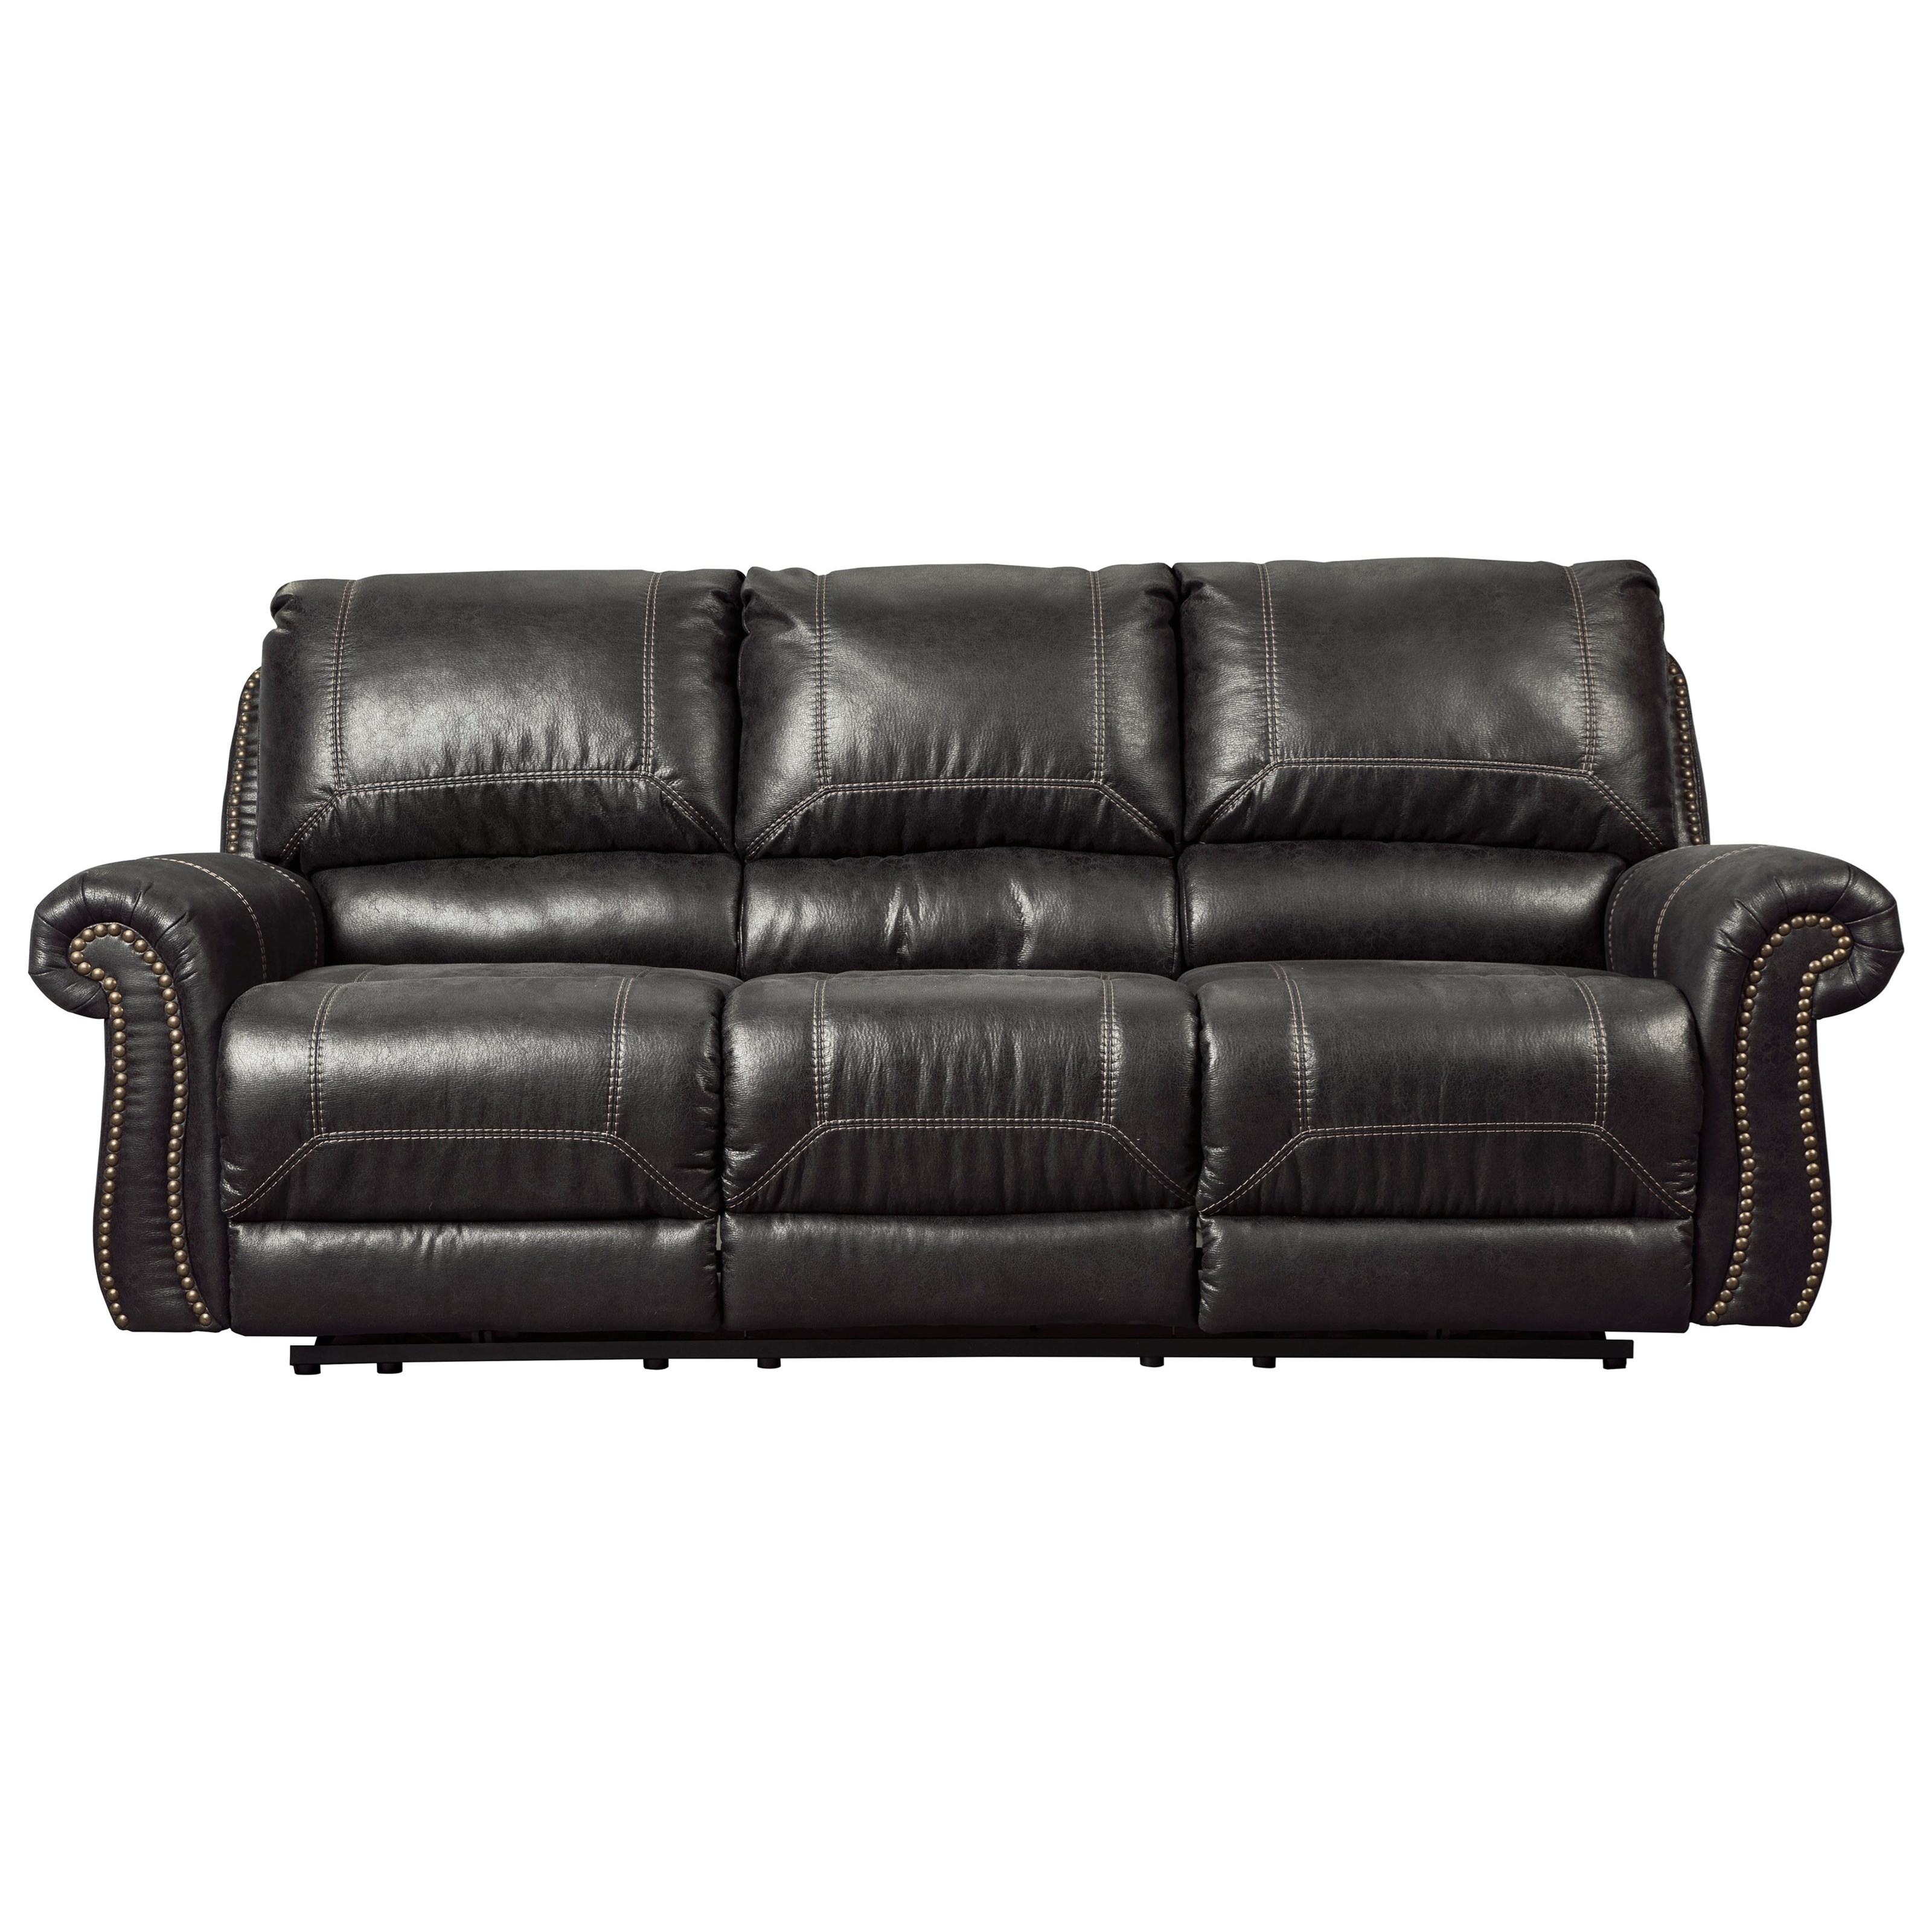 Sofa With Recliner Milhaven Reclining Sofa With Rolled Arms Nailhead Trim By Signature Design By Ashley At Royal Furniture